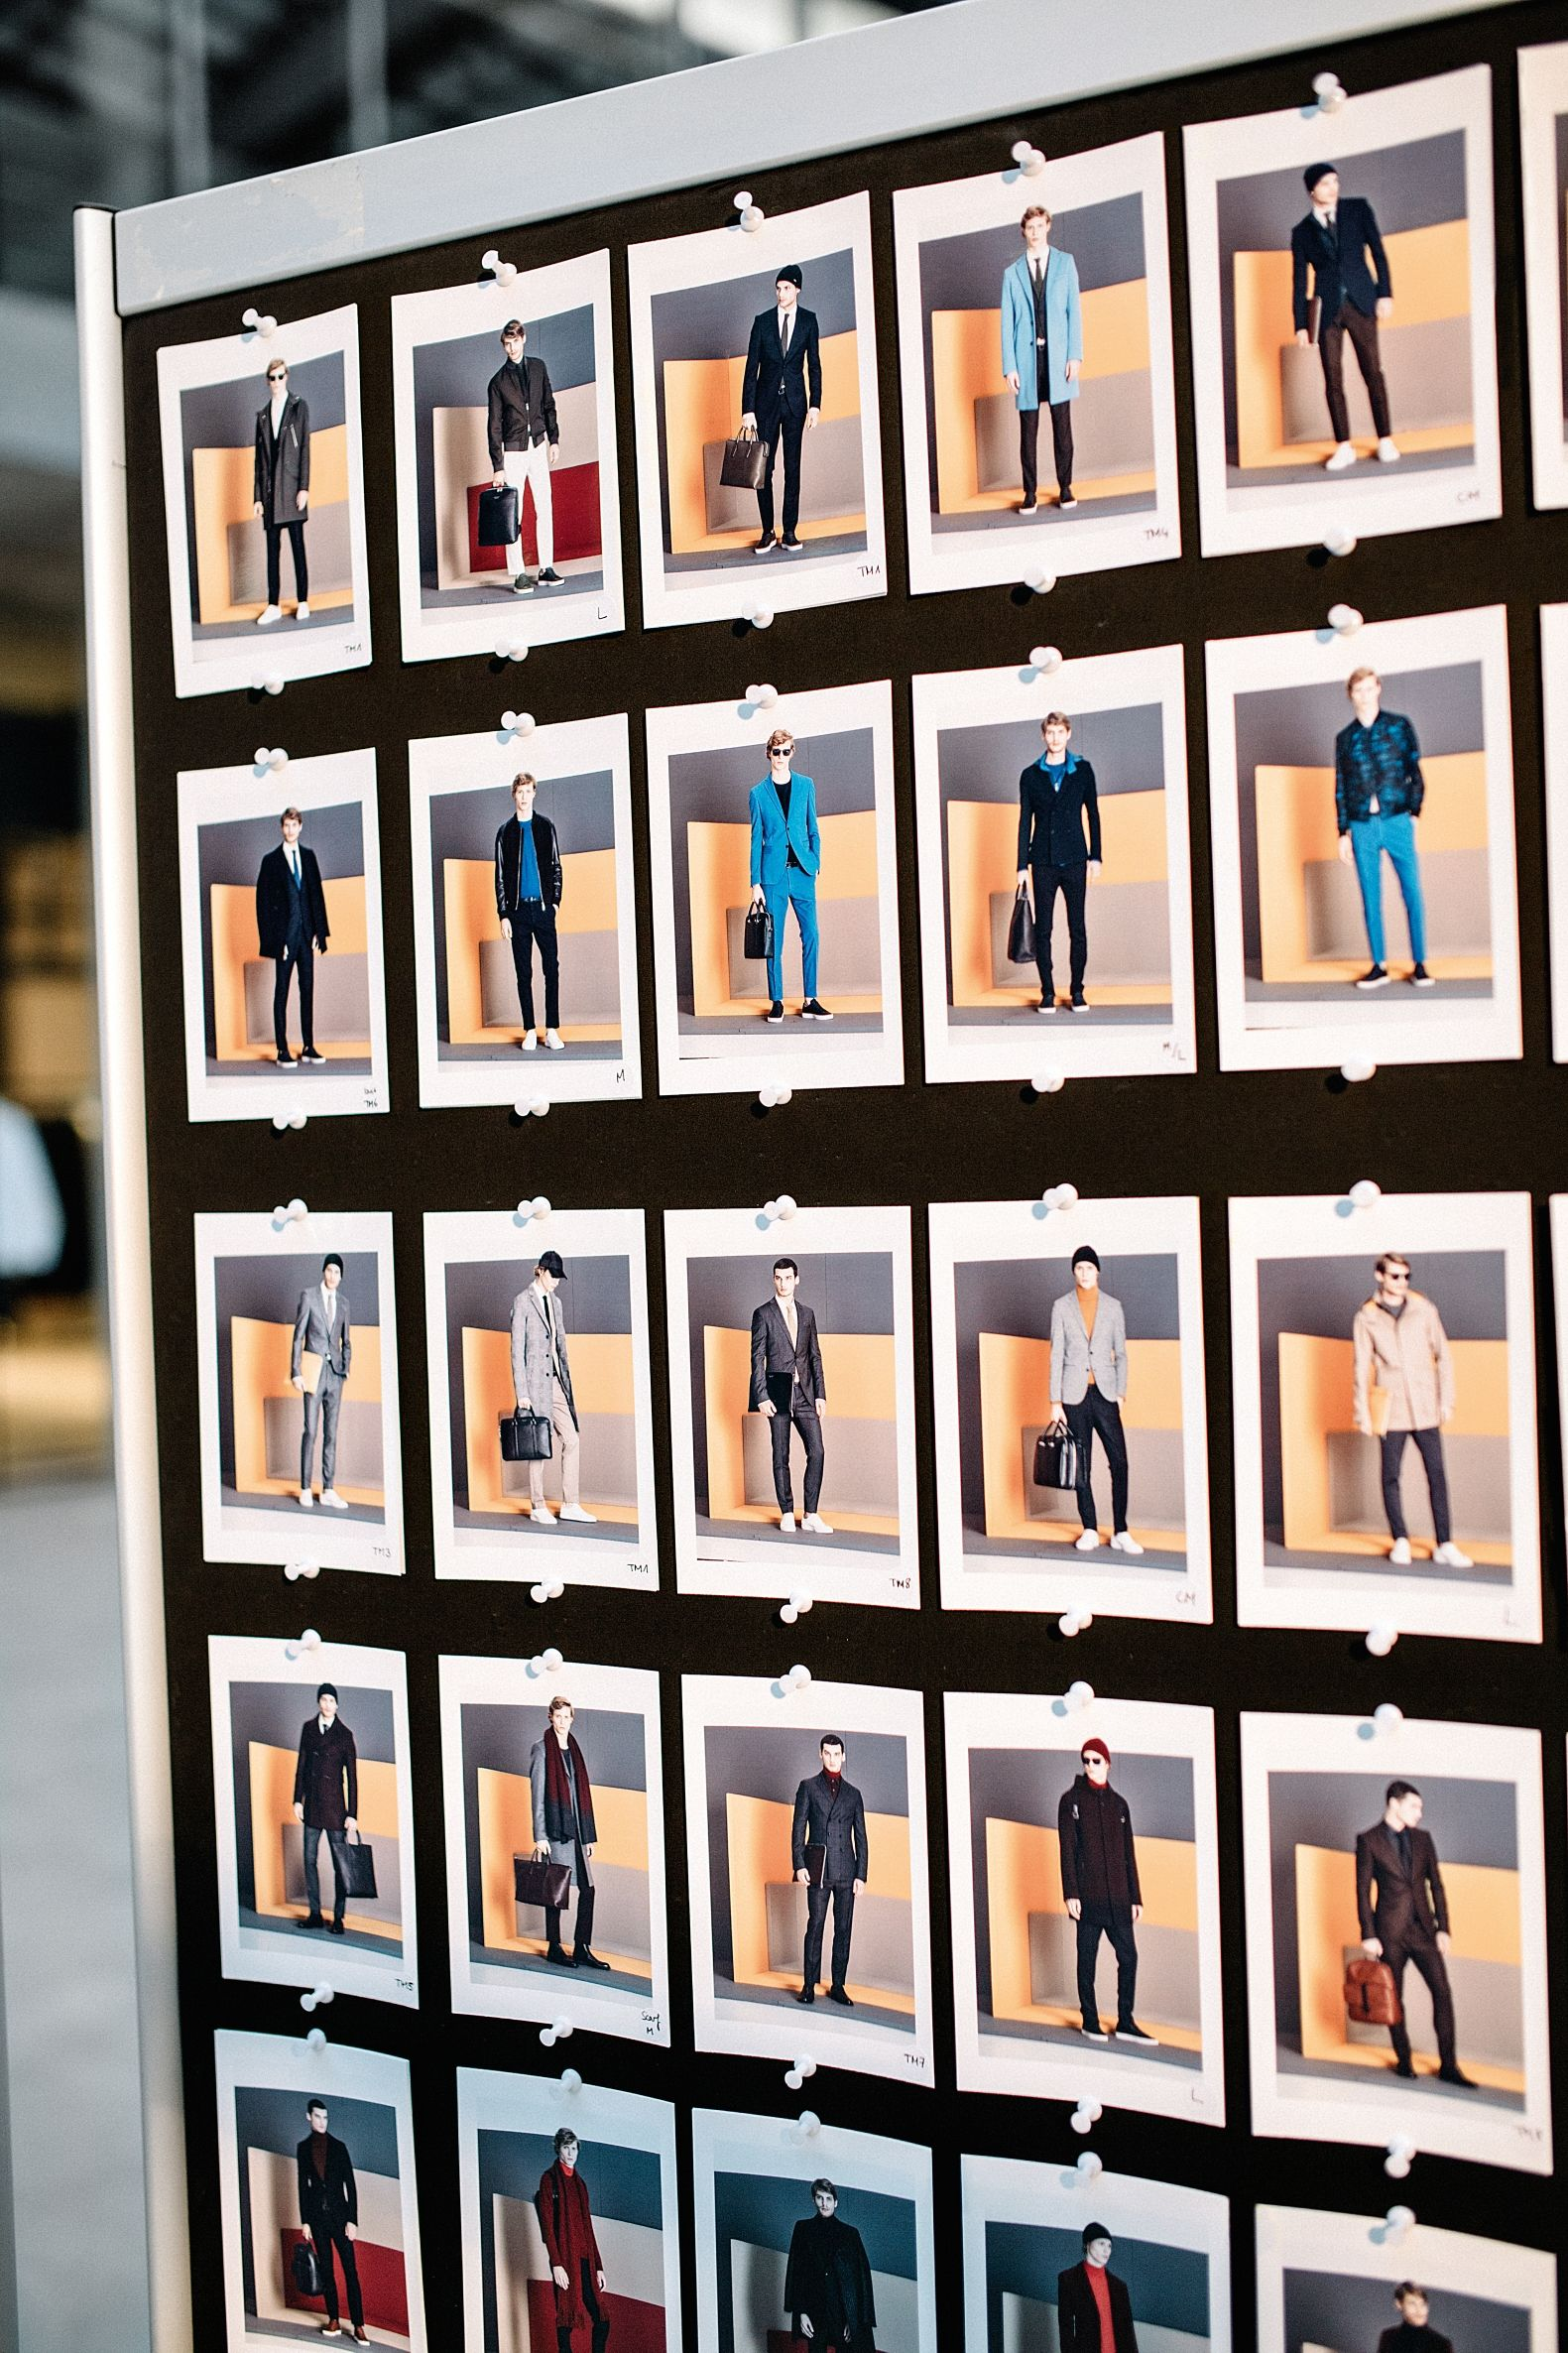 Photographs lined up from the BOSS Menswear Fall/Winter 2016 lookbook